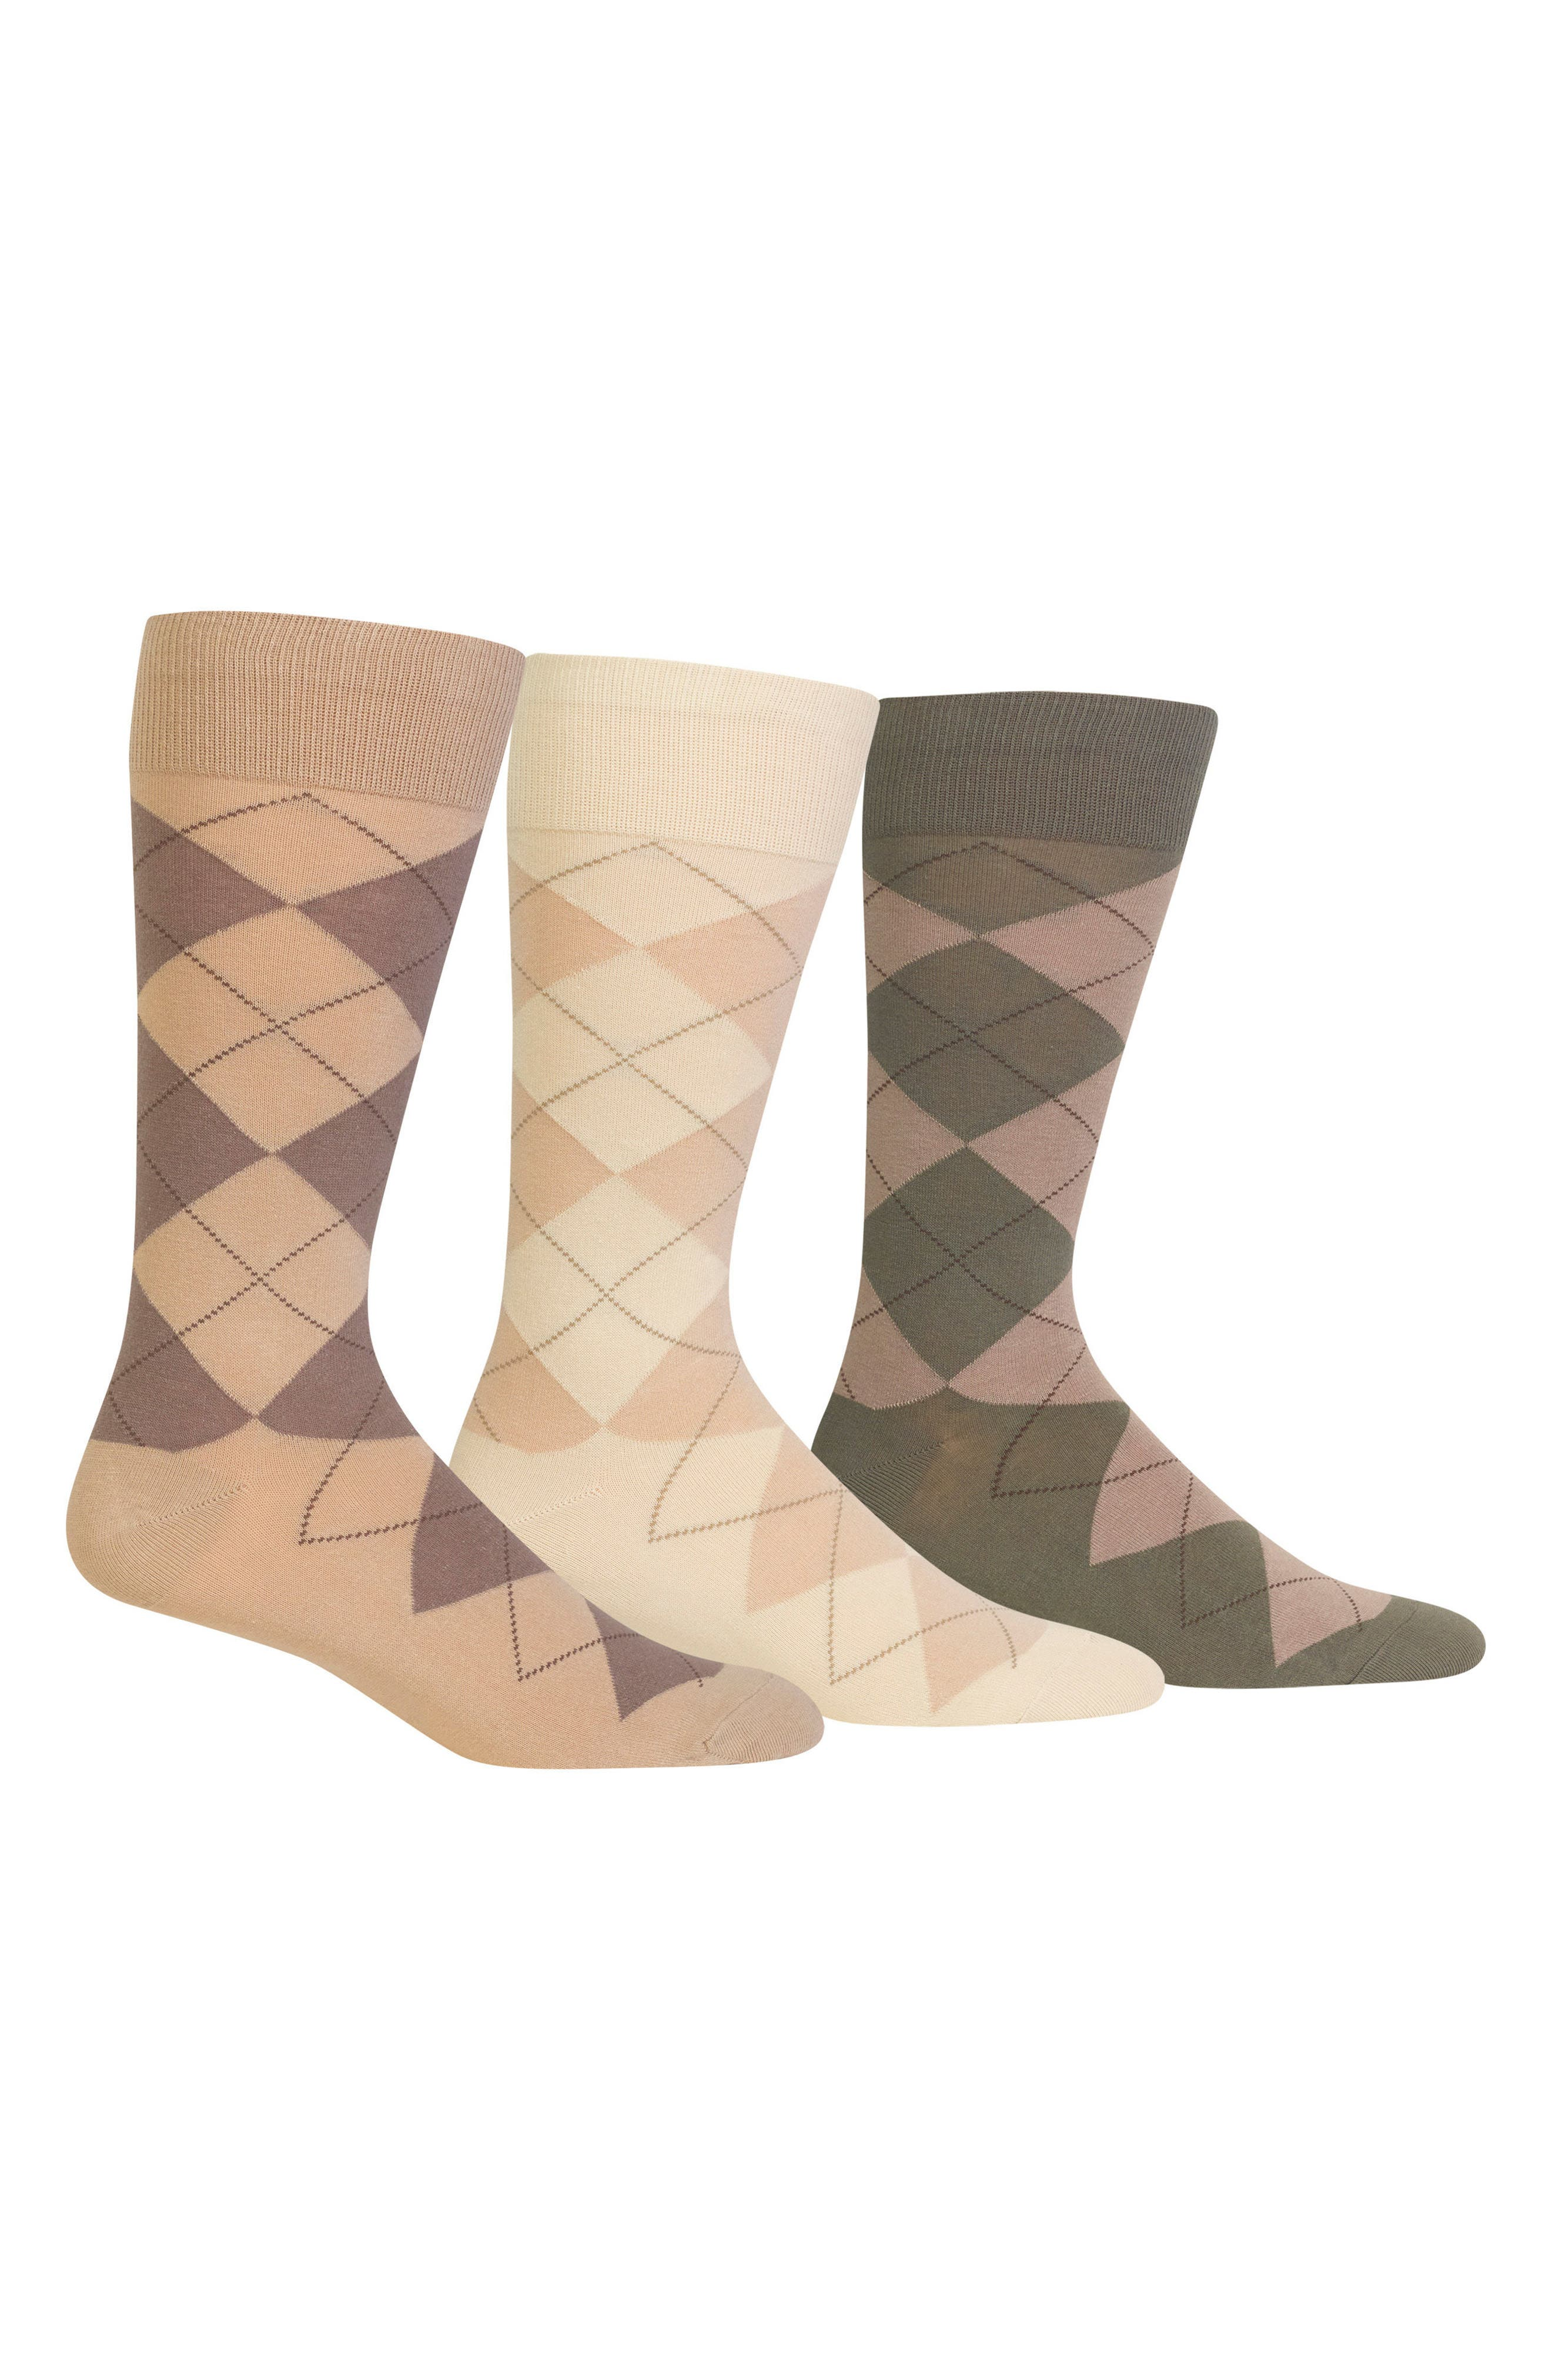 3-Pack Argyle Socks,                             Alternate thumbnail 2, color,                             LT COFFEE/ BONE WHITE/ TOBACCO